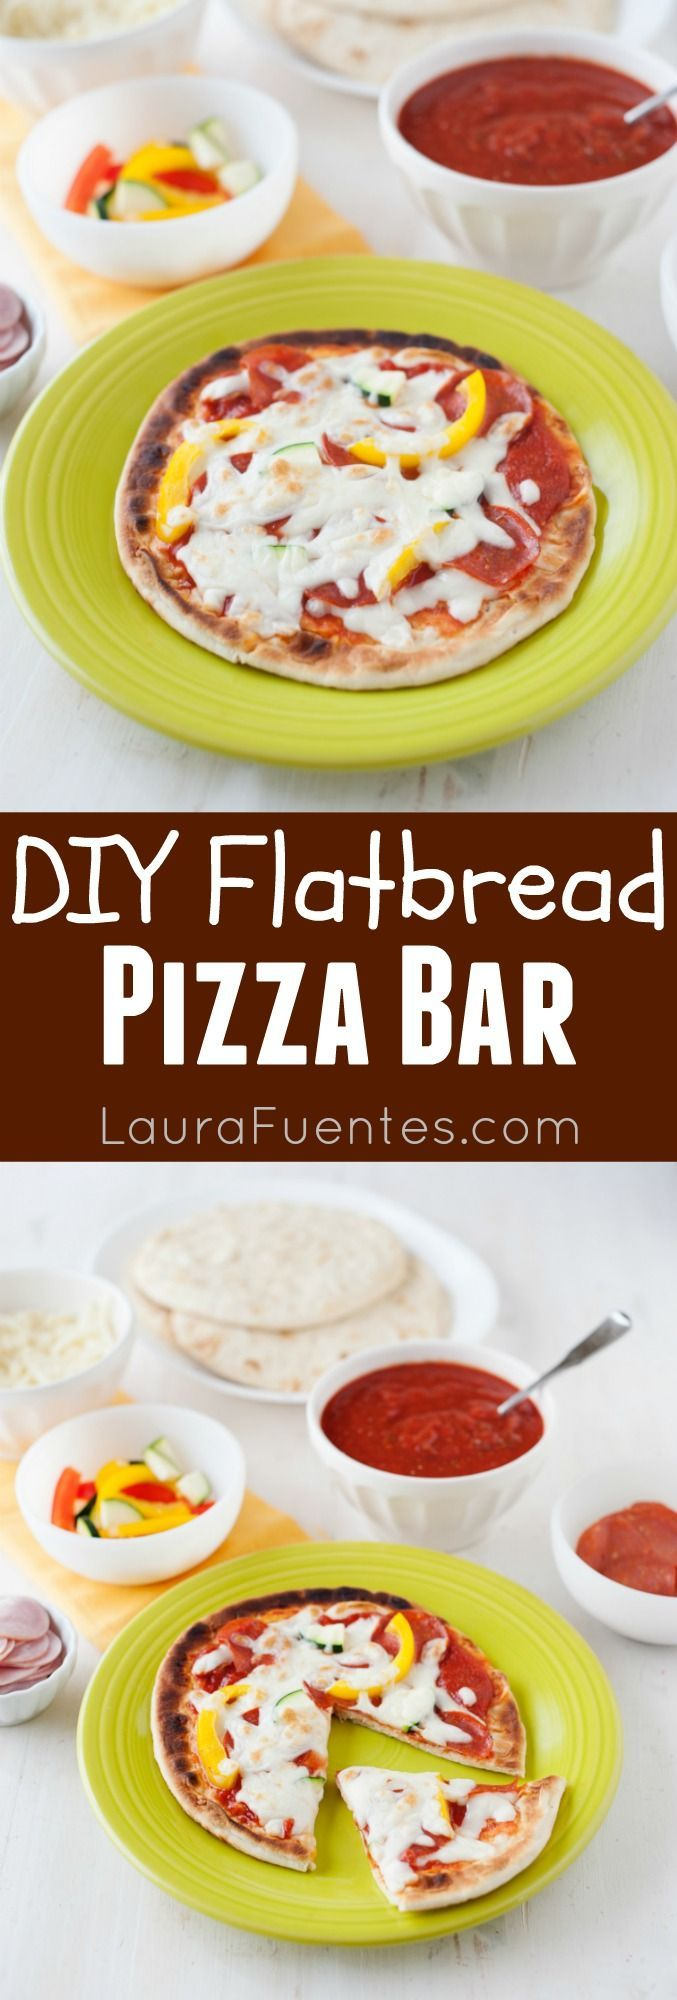 177 best healthy comfort foods images on pinterest healthy diy family pizza night create a pizza bar so everyone can make their own delicious healthy comfort foodcomfort forumfinder Image collections